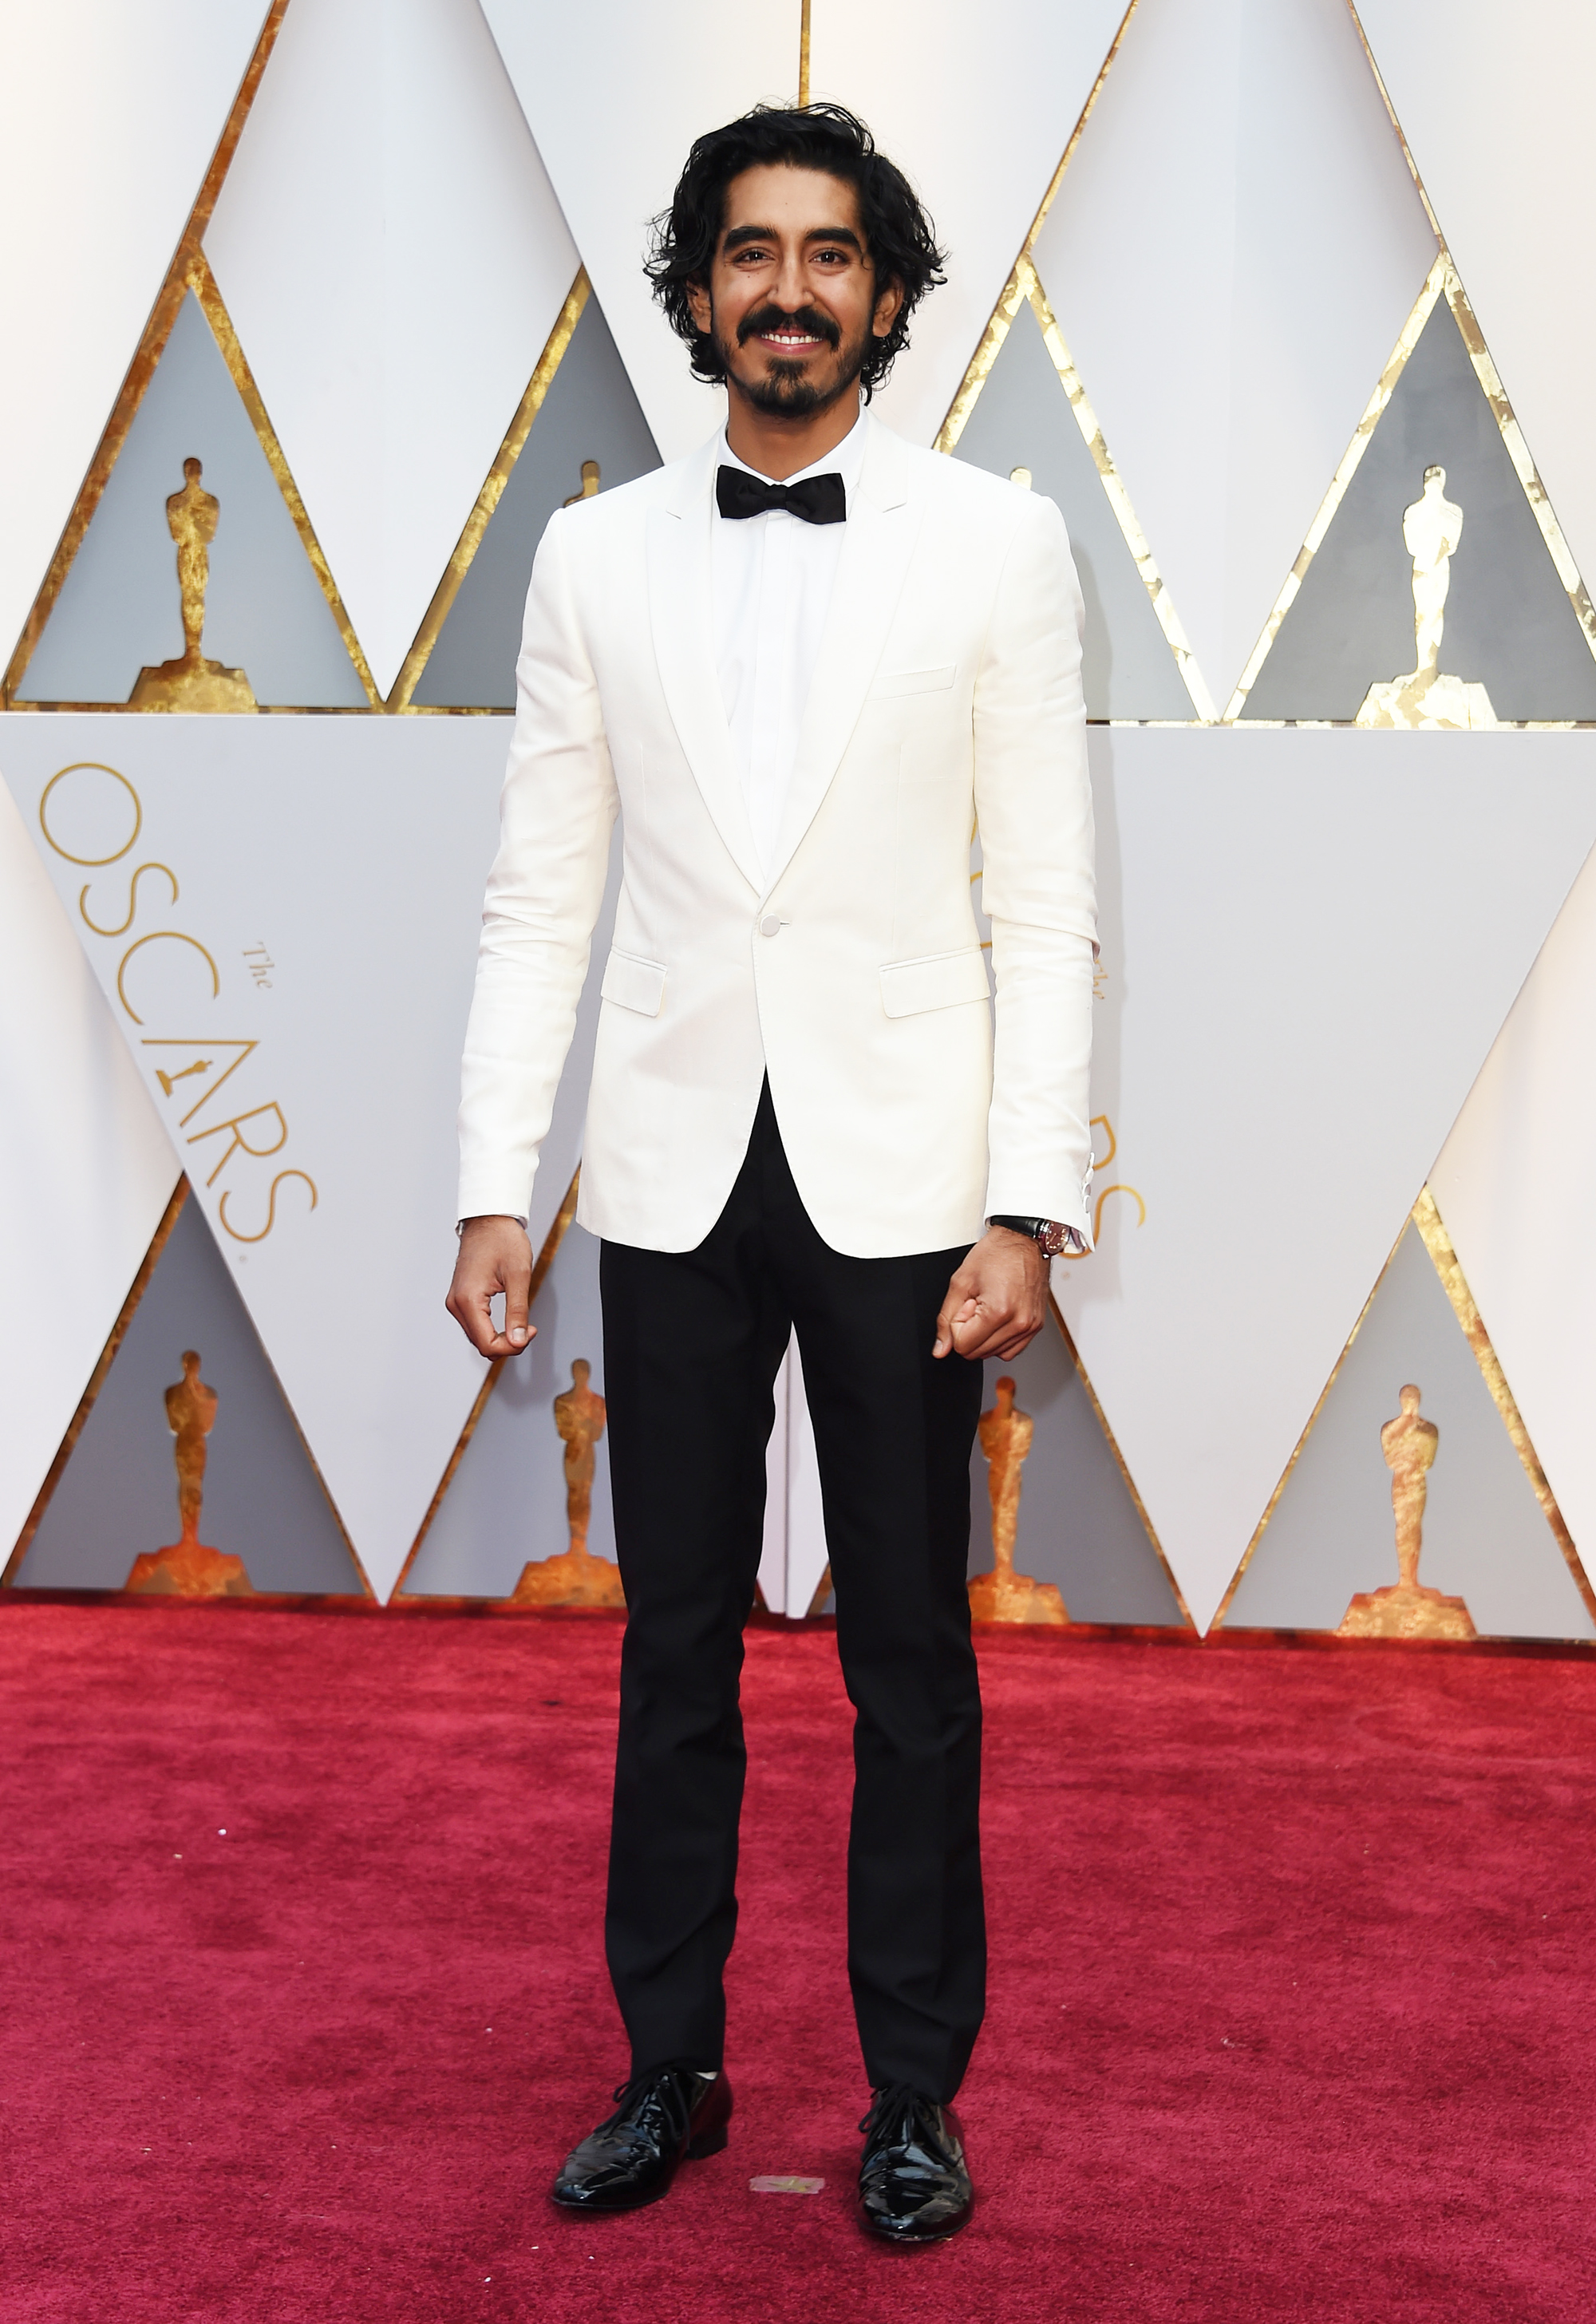 Dev Patel on the red carpet for the 89th Oscars, on Feb. 26, 2017 in Hollywood, Calif.